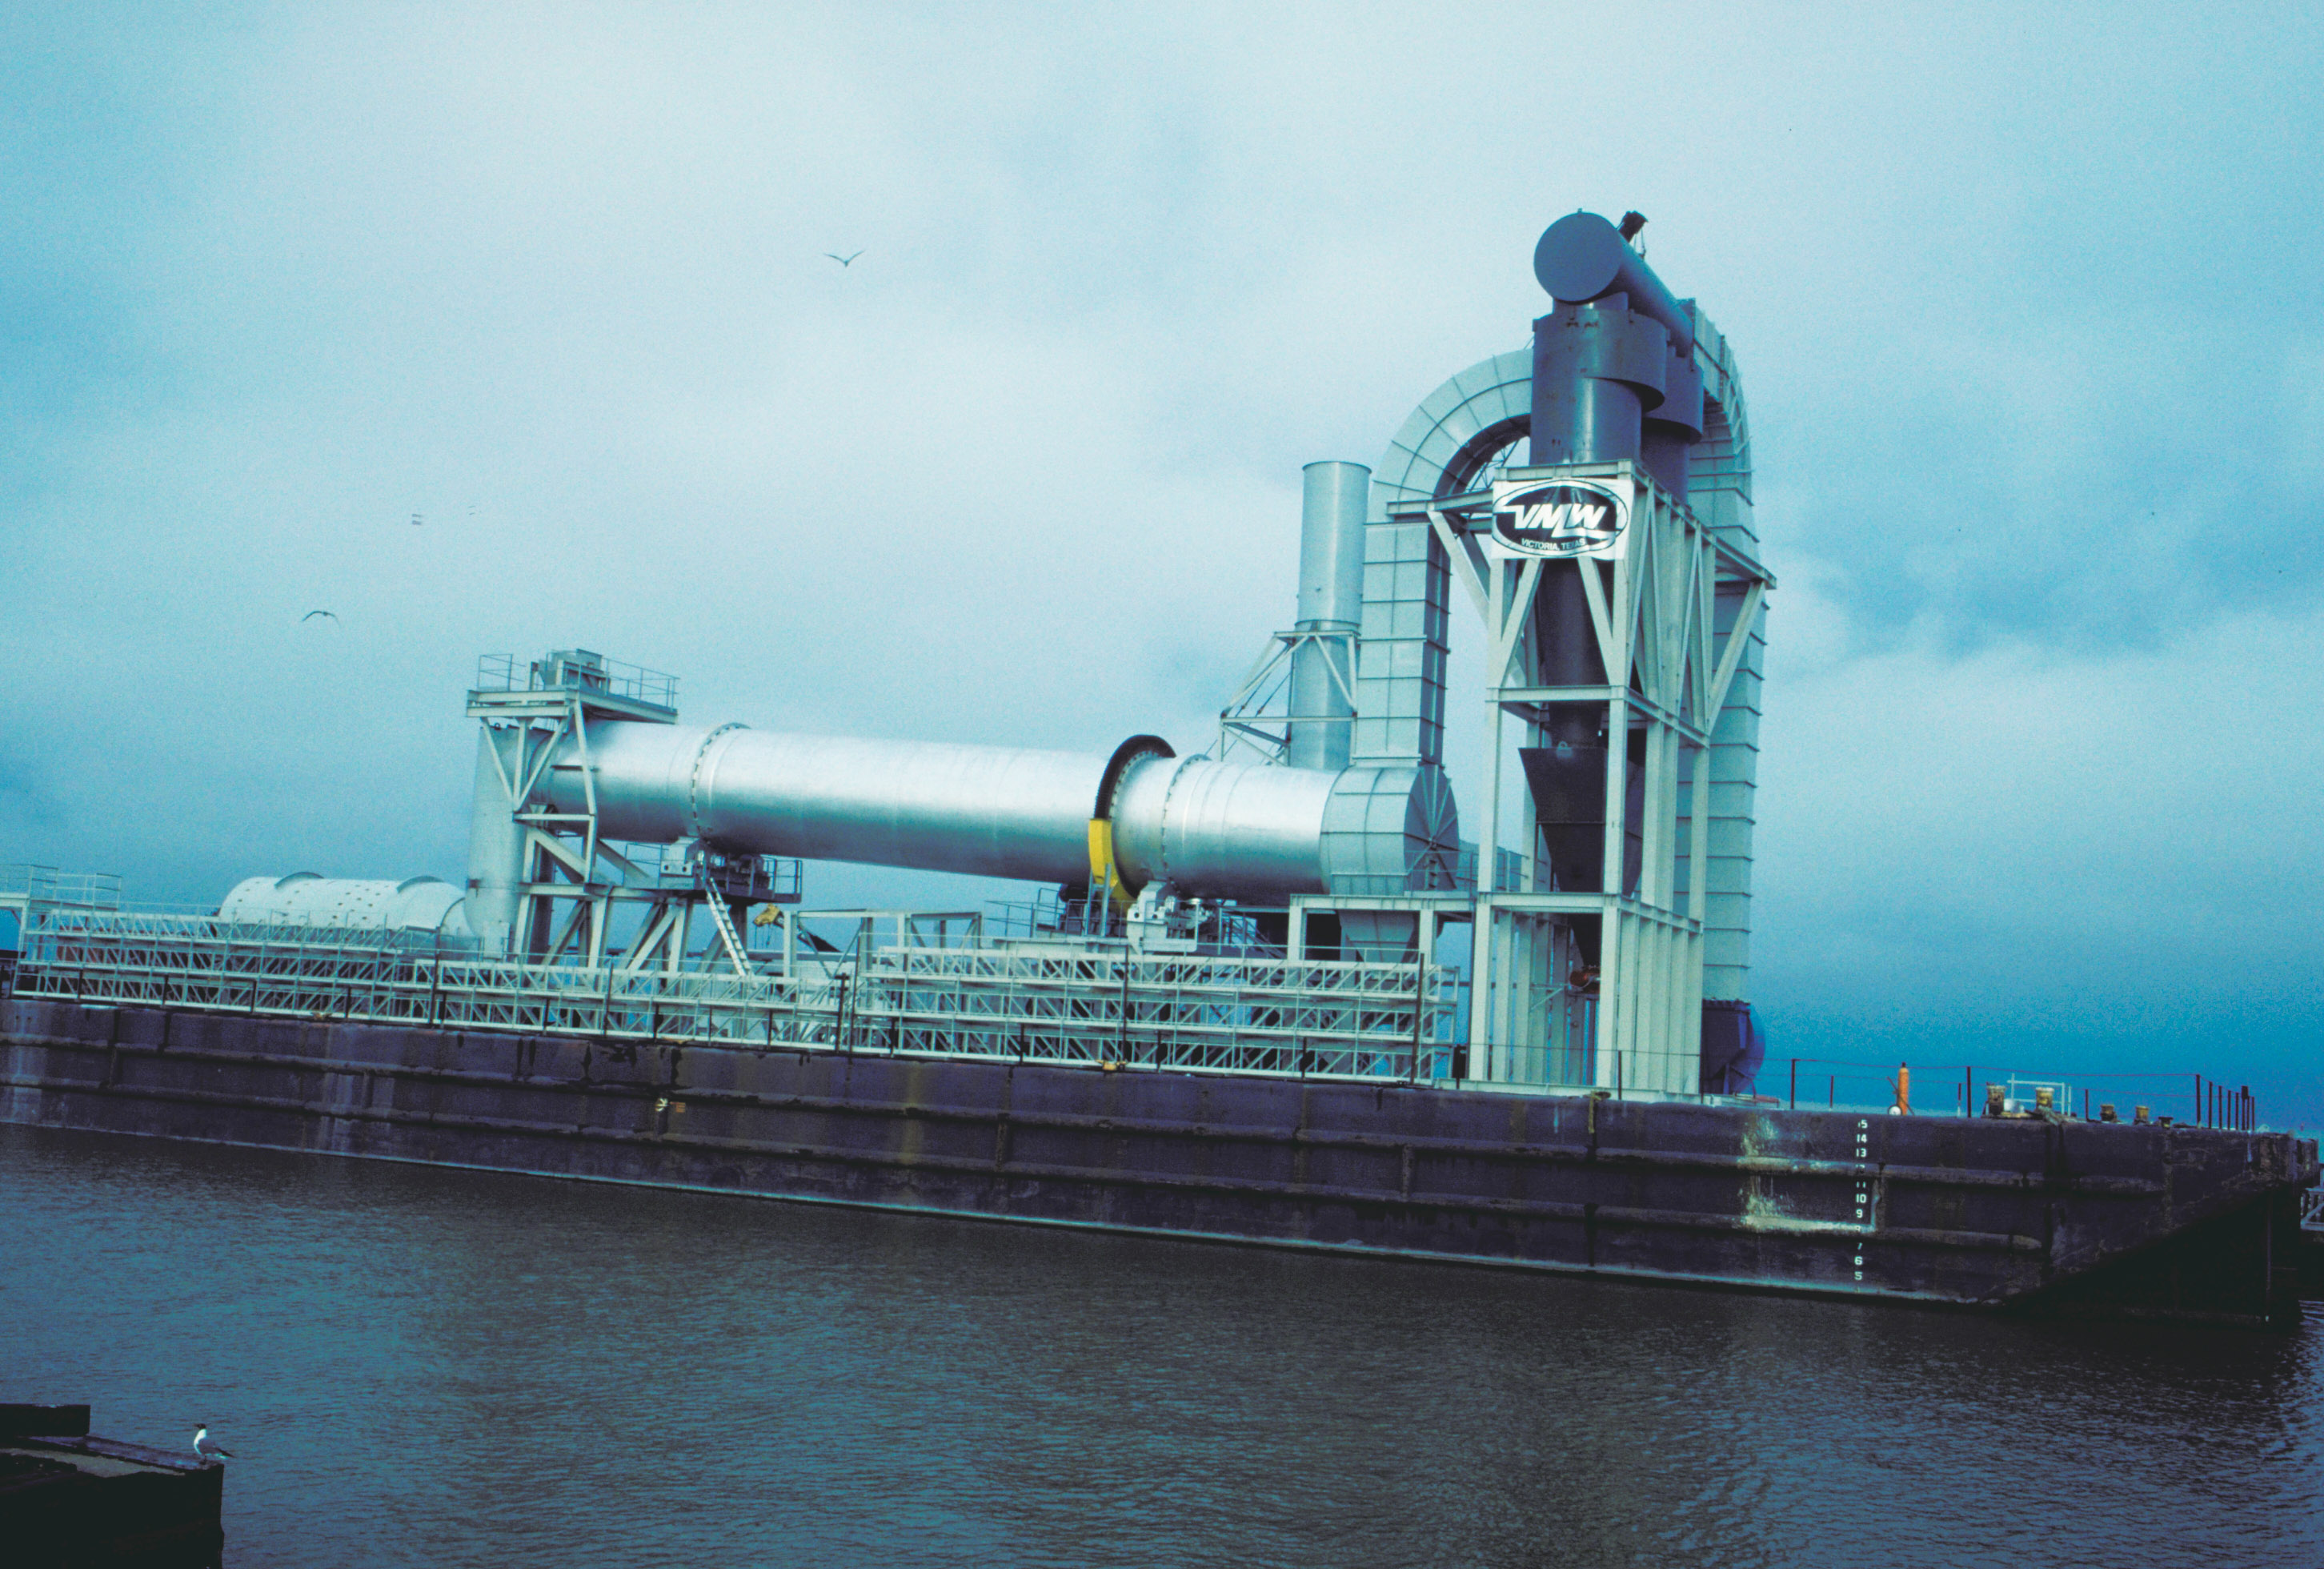 Rotary Dryer shipped on barge